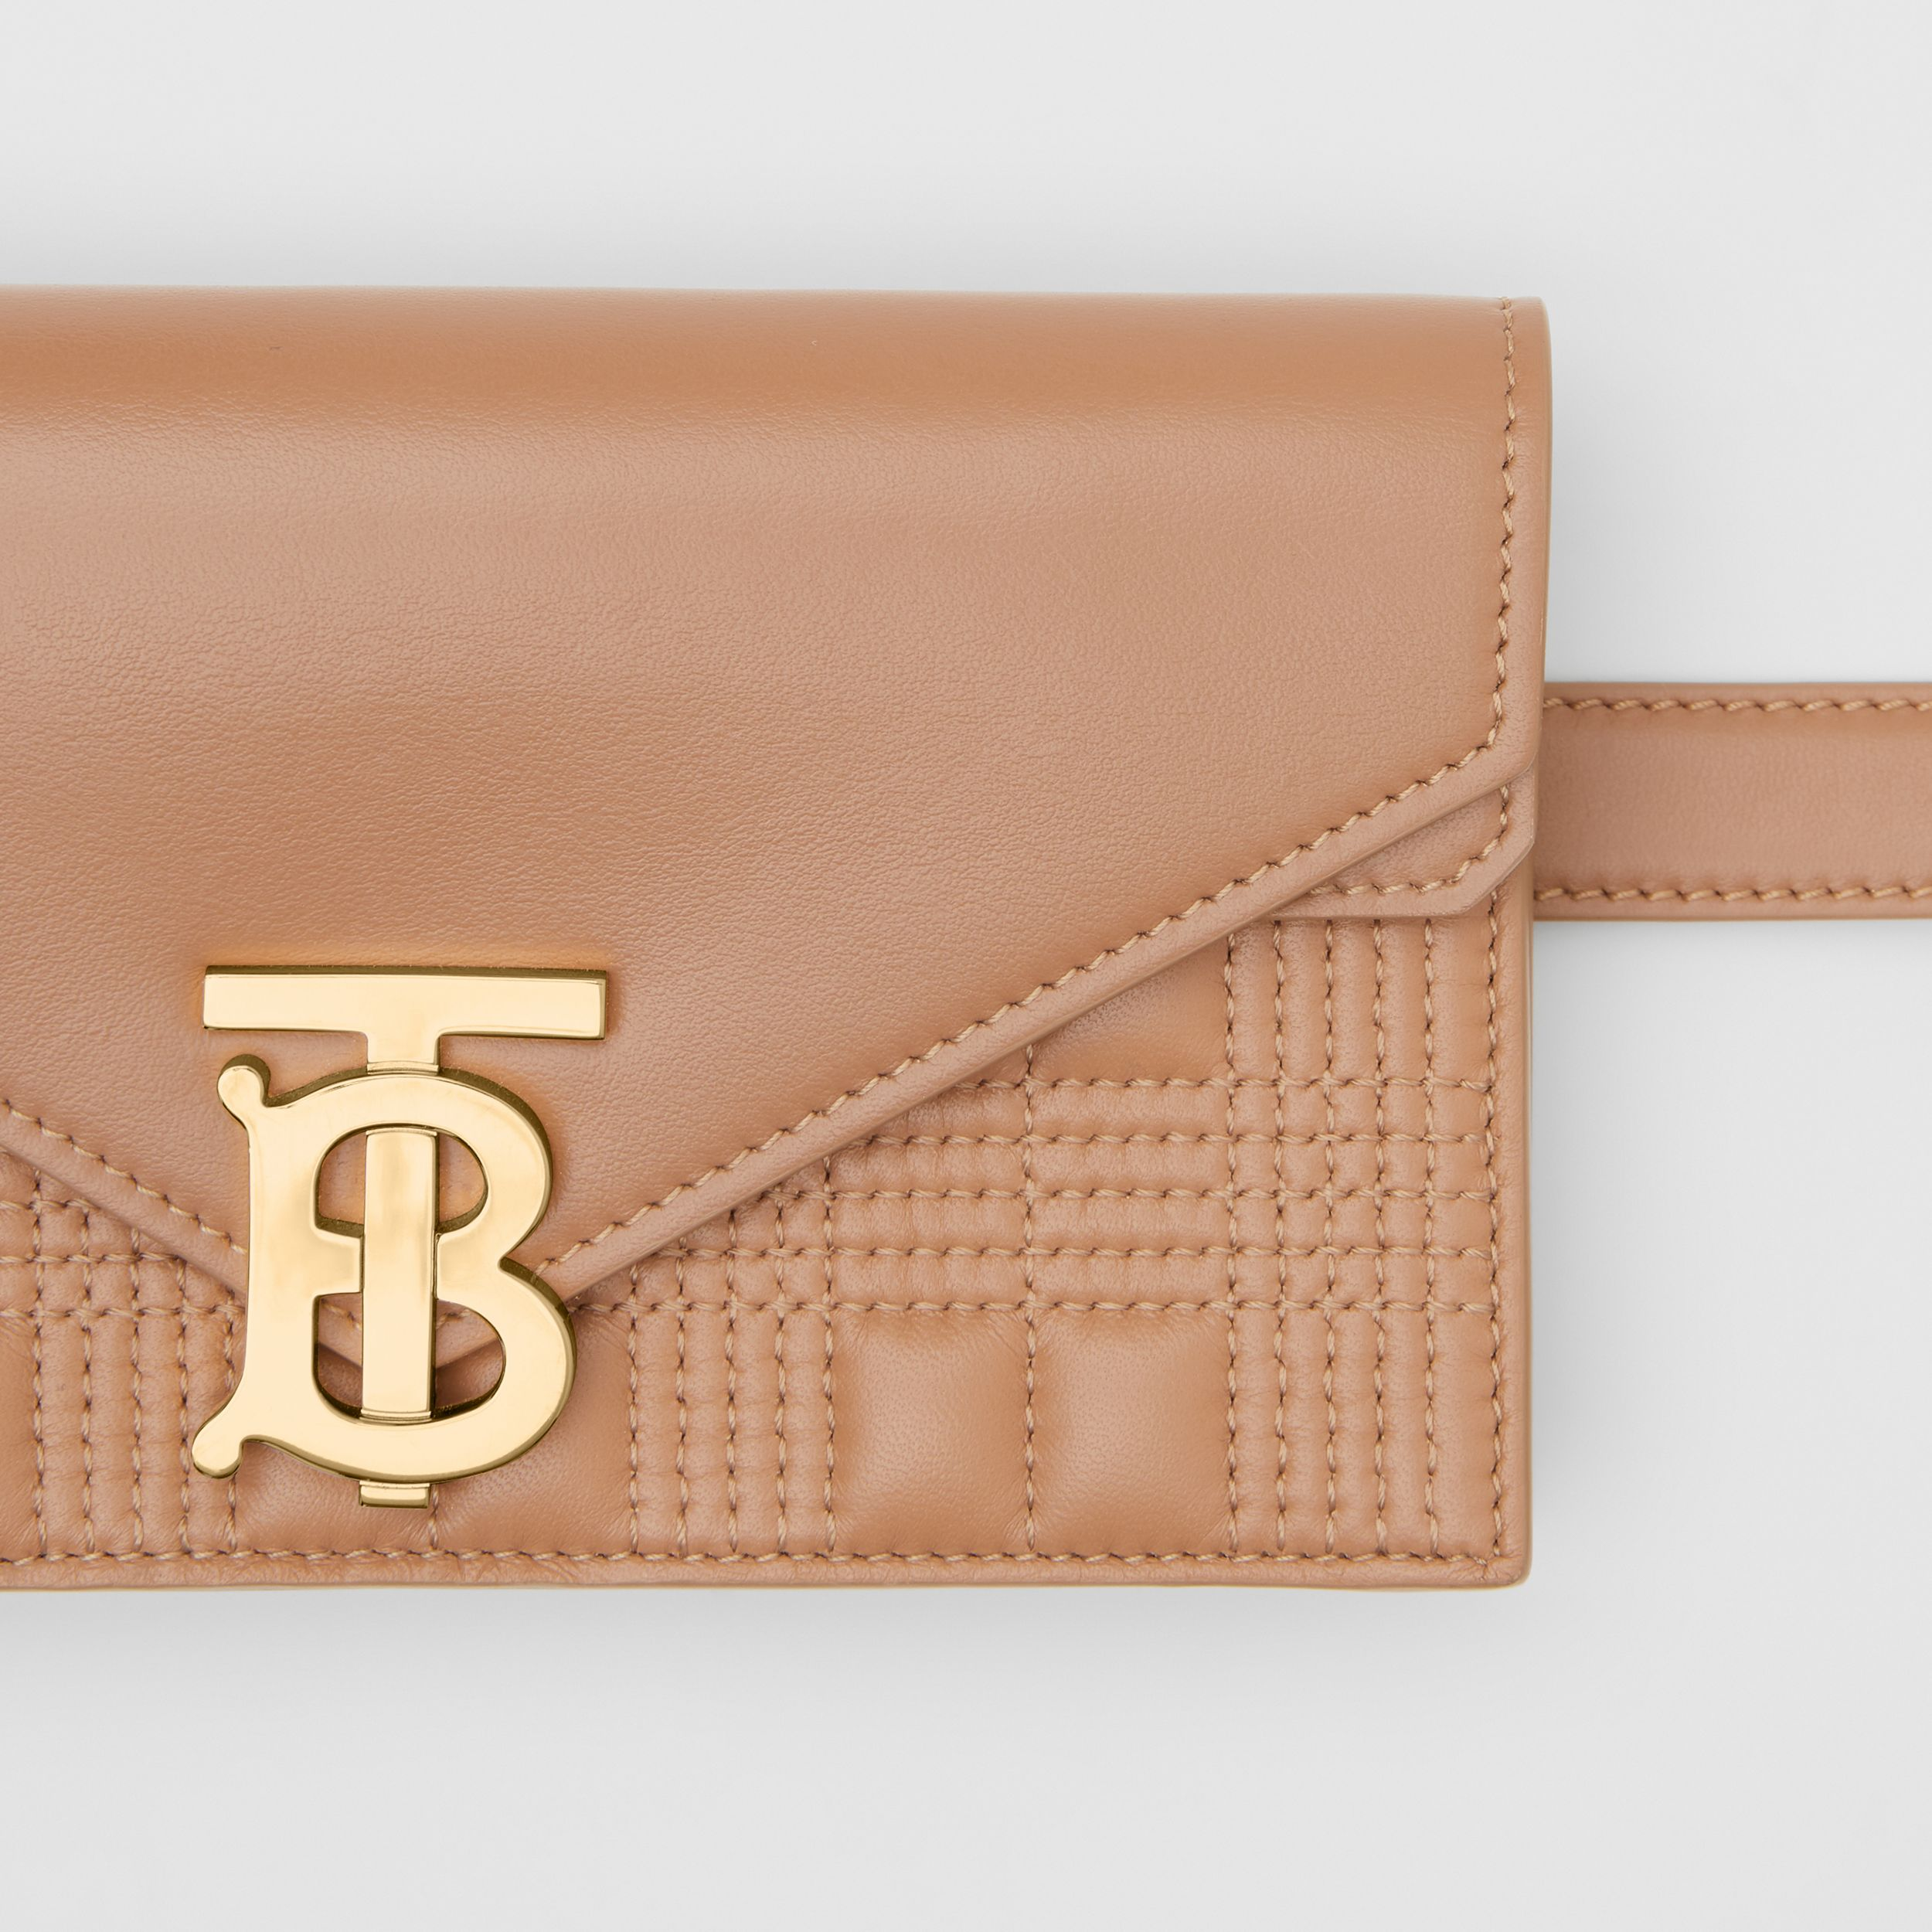 Belted Quilted Lambskin TB Envelope Clutch in Warm Camel - Women | Burberry - 2